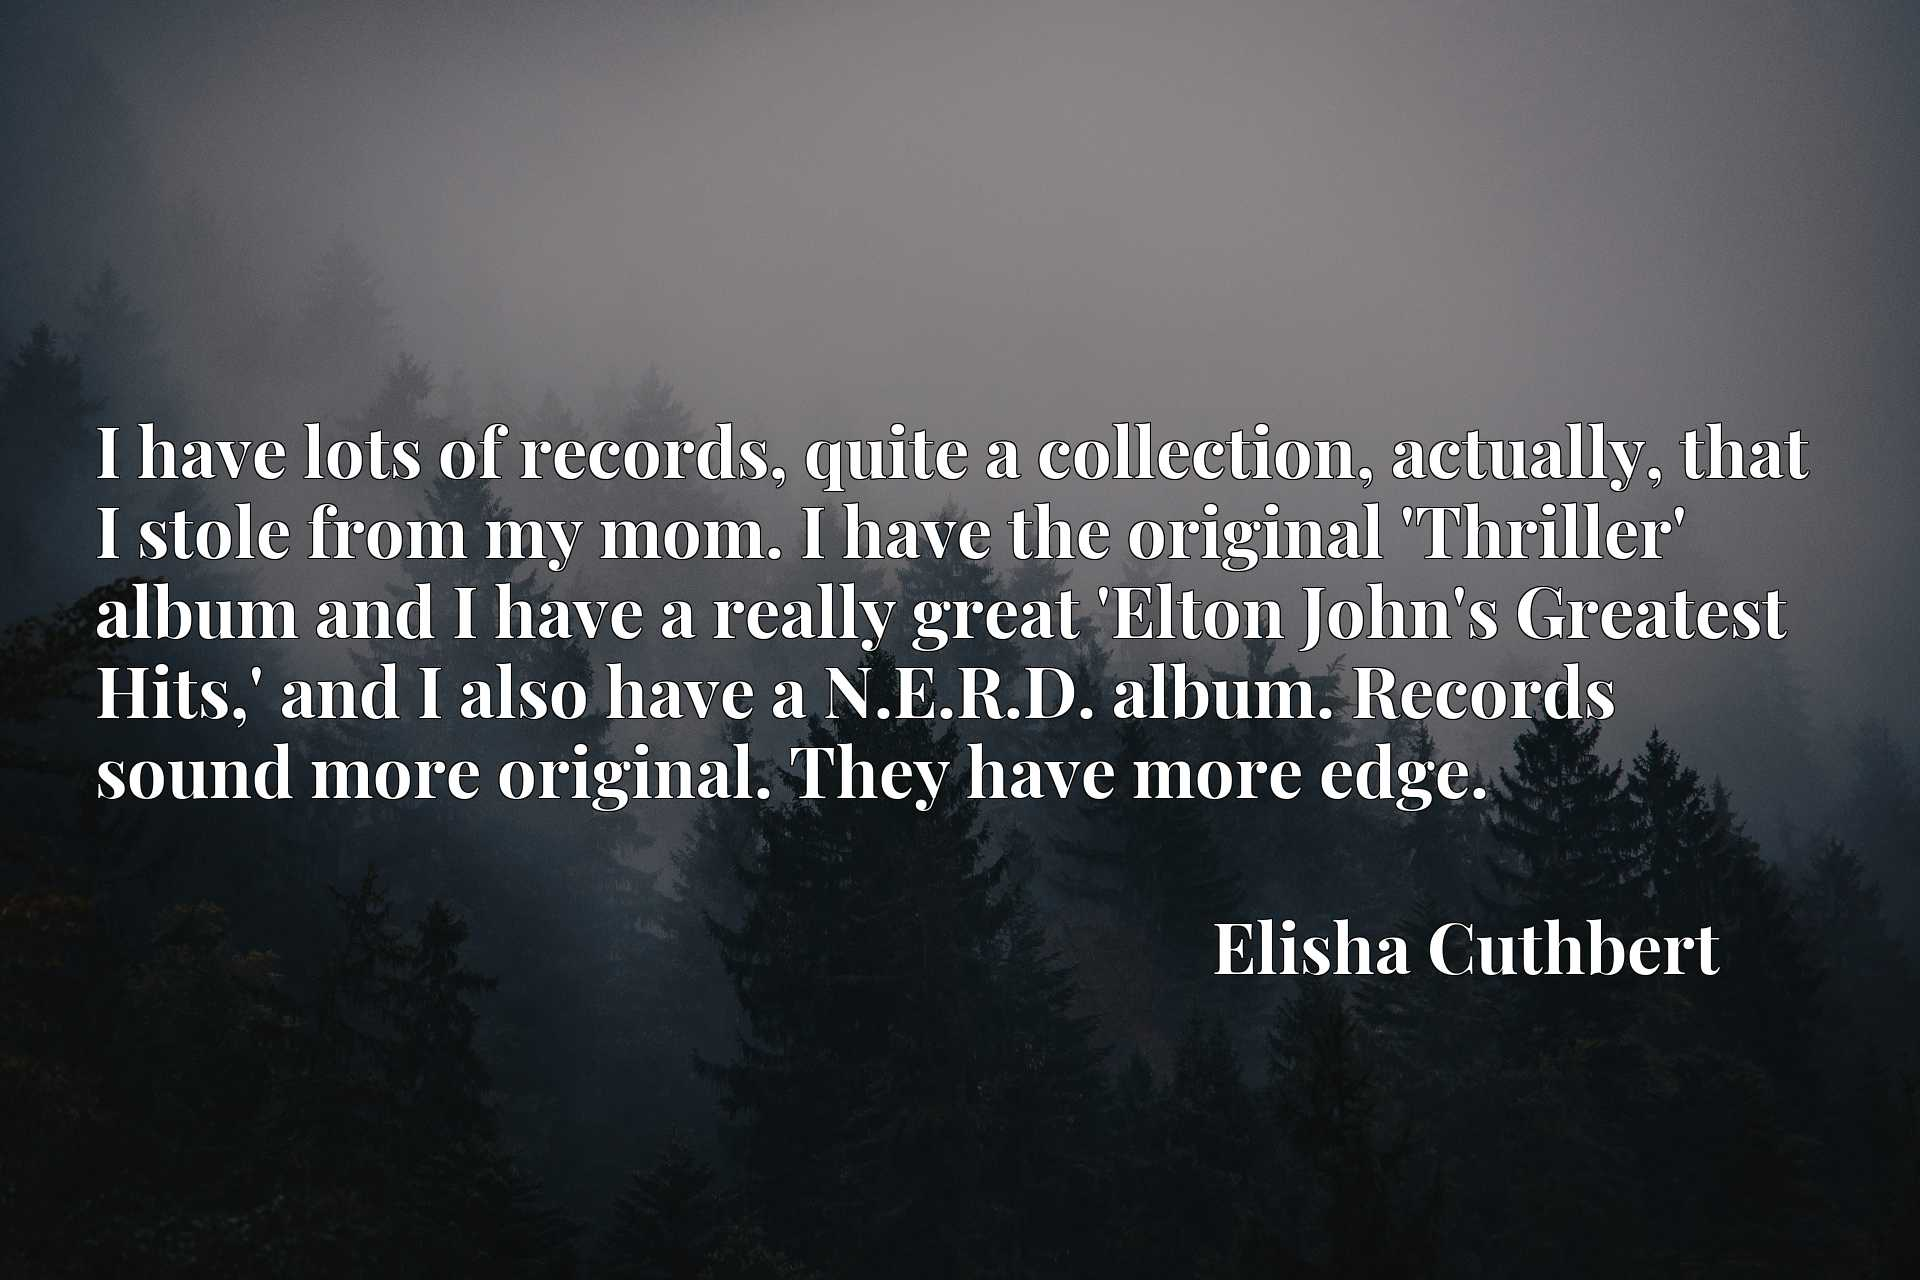 I have lots of records, quite a collection, actually, that I stole from my mom. I have the original 'Thriller' album and I have a really great 'Elton John's Greatest Hits,' and I also have a N.E.R.D. album. Records sound more original. They have more edge.